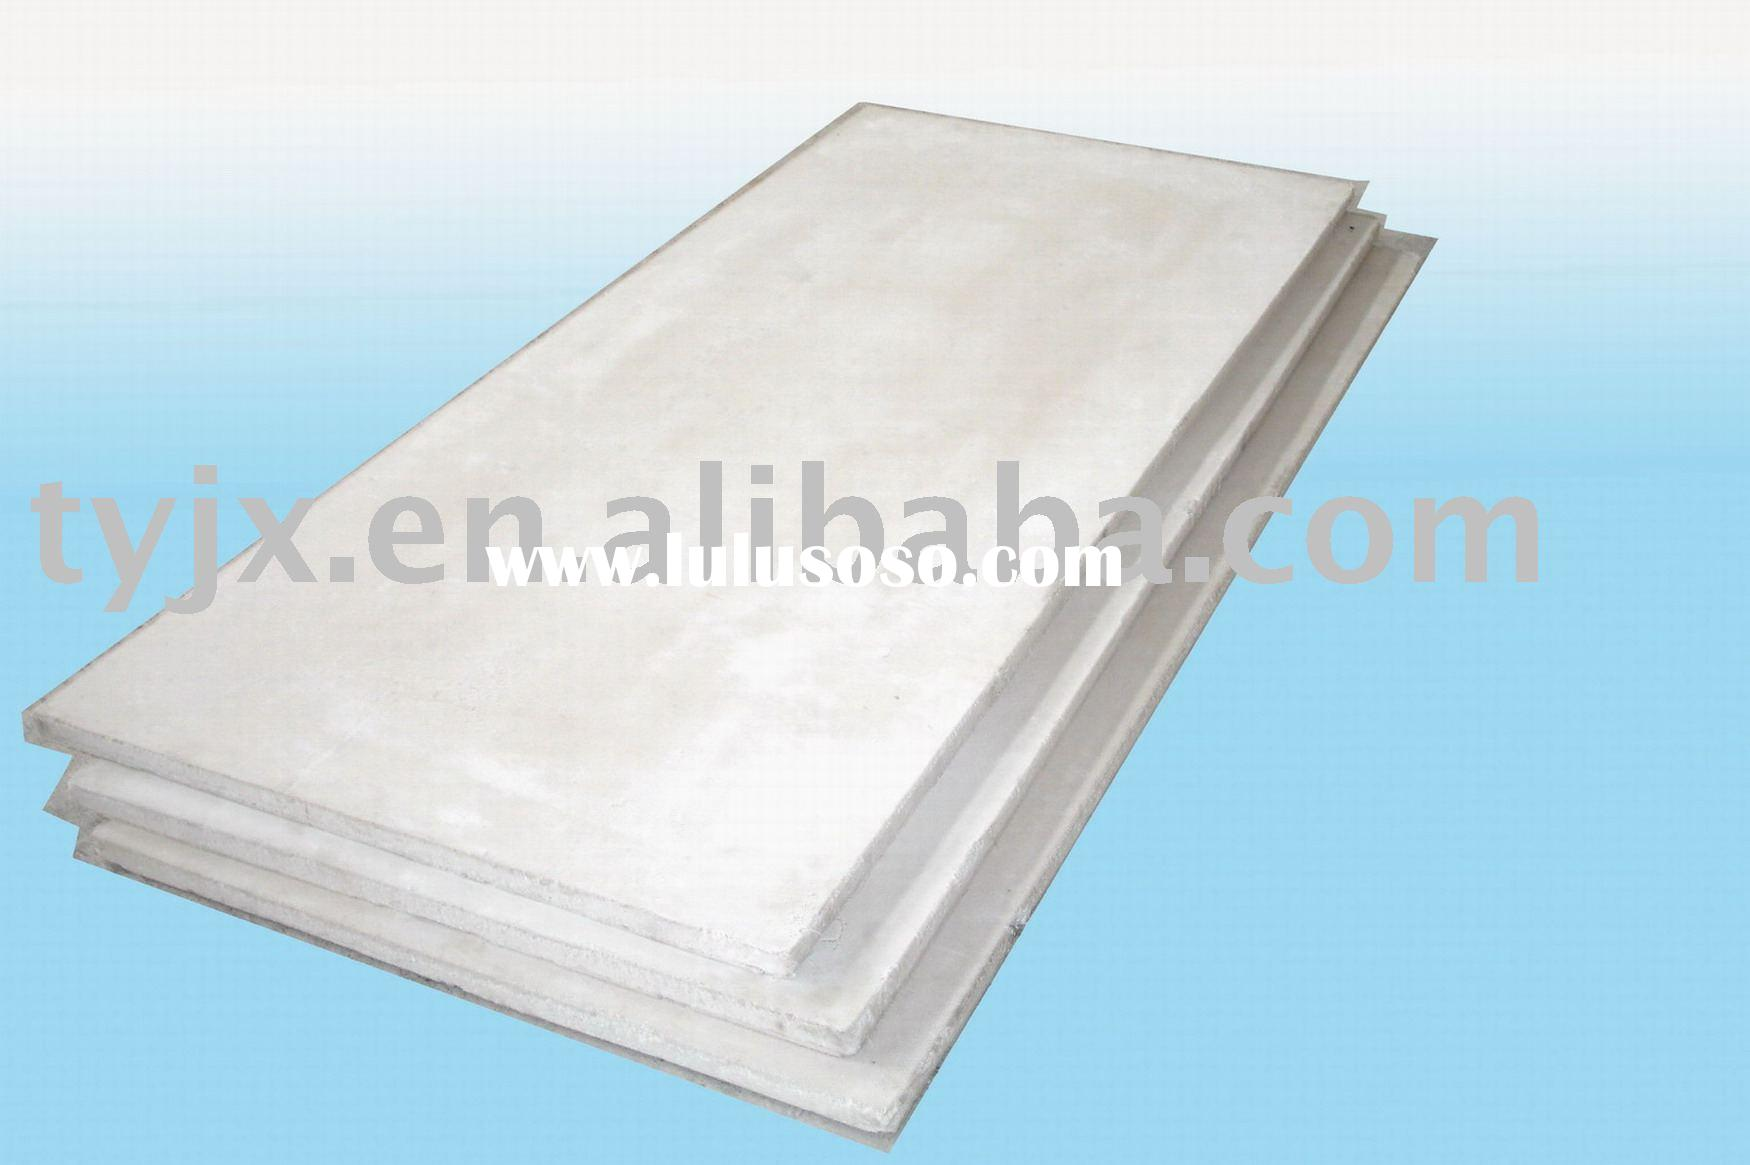 *thermal insulation materials